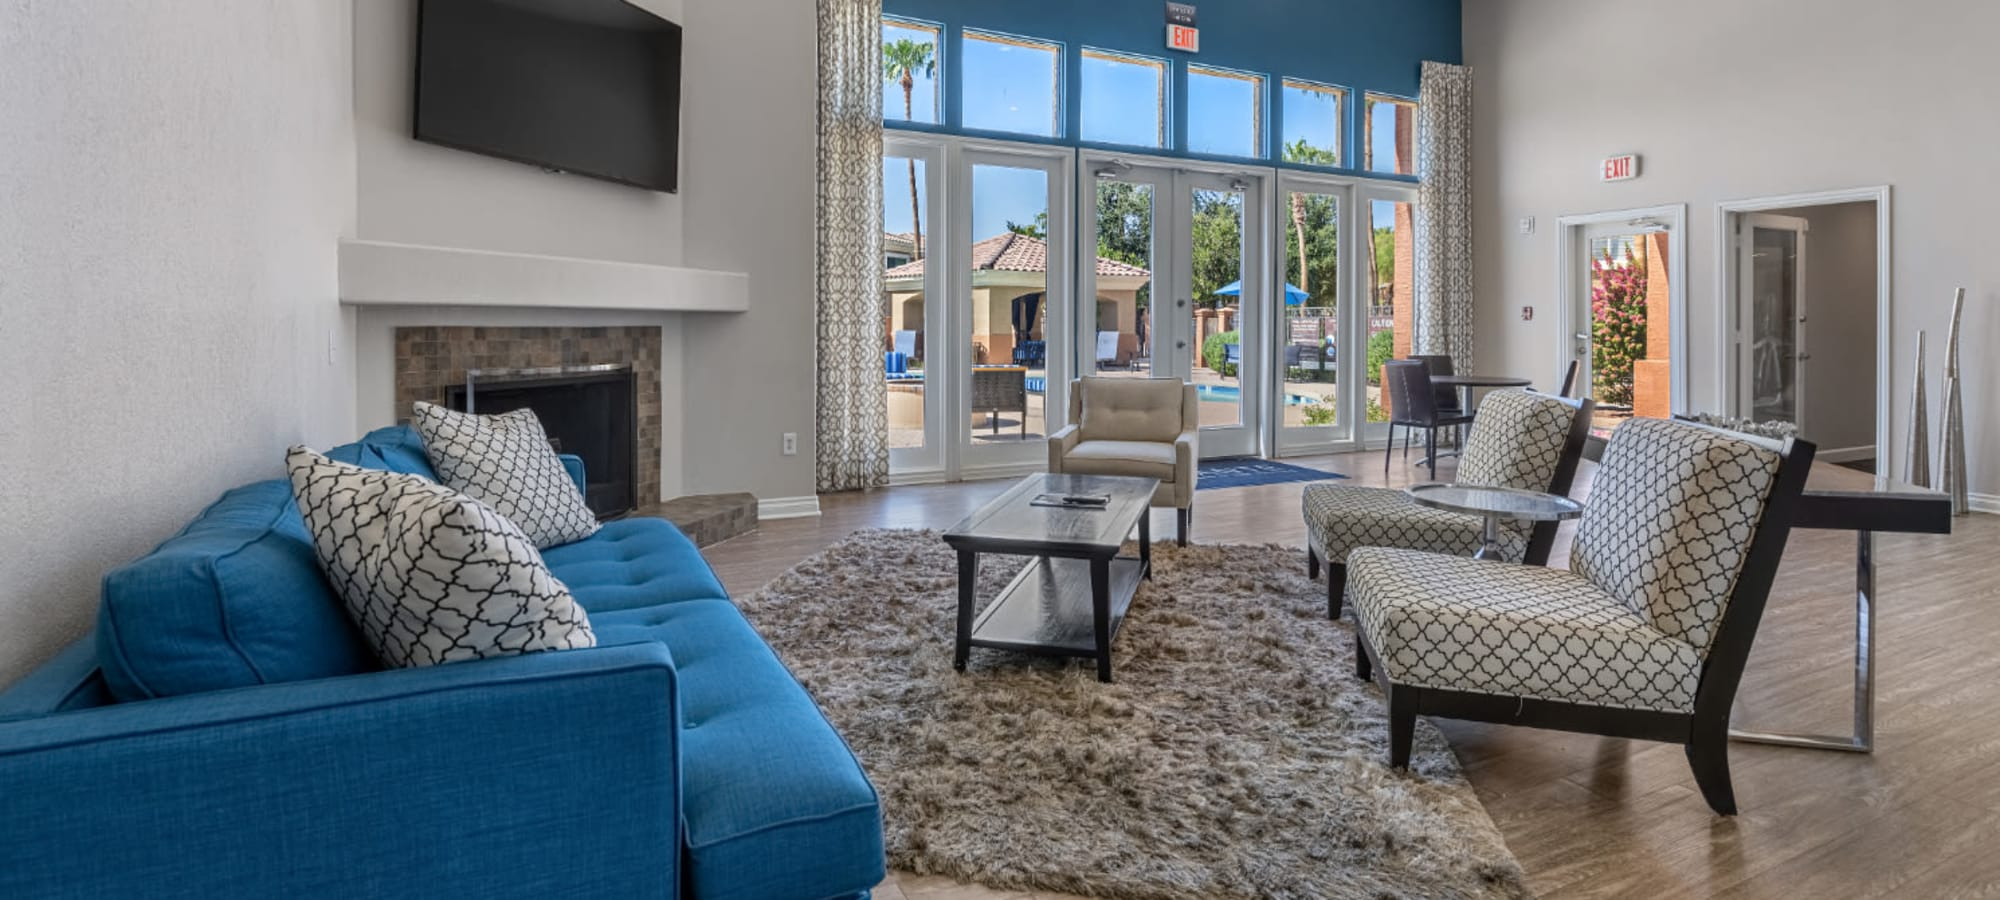 Apply to live at Alante at the Islands in Chandler, Arizona